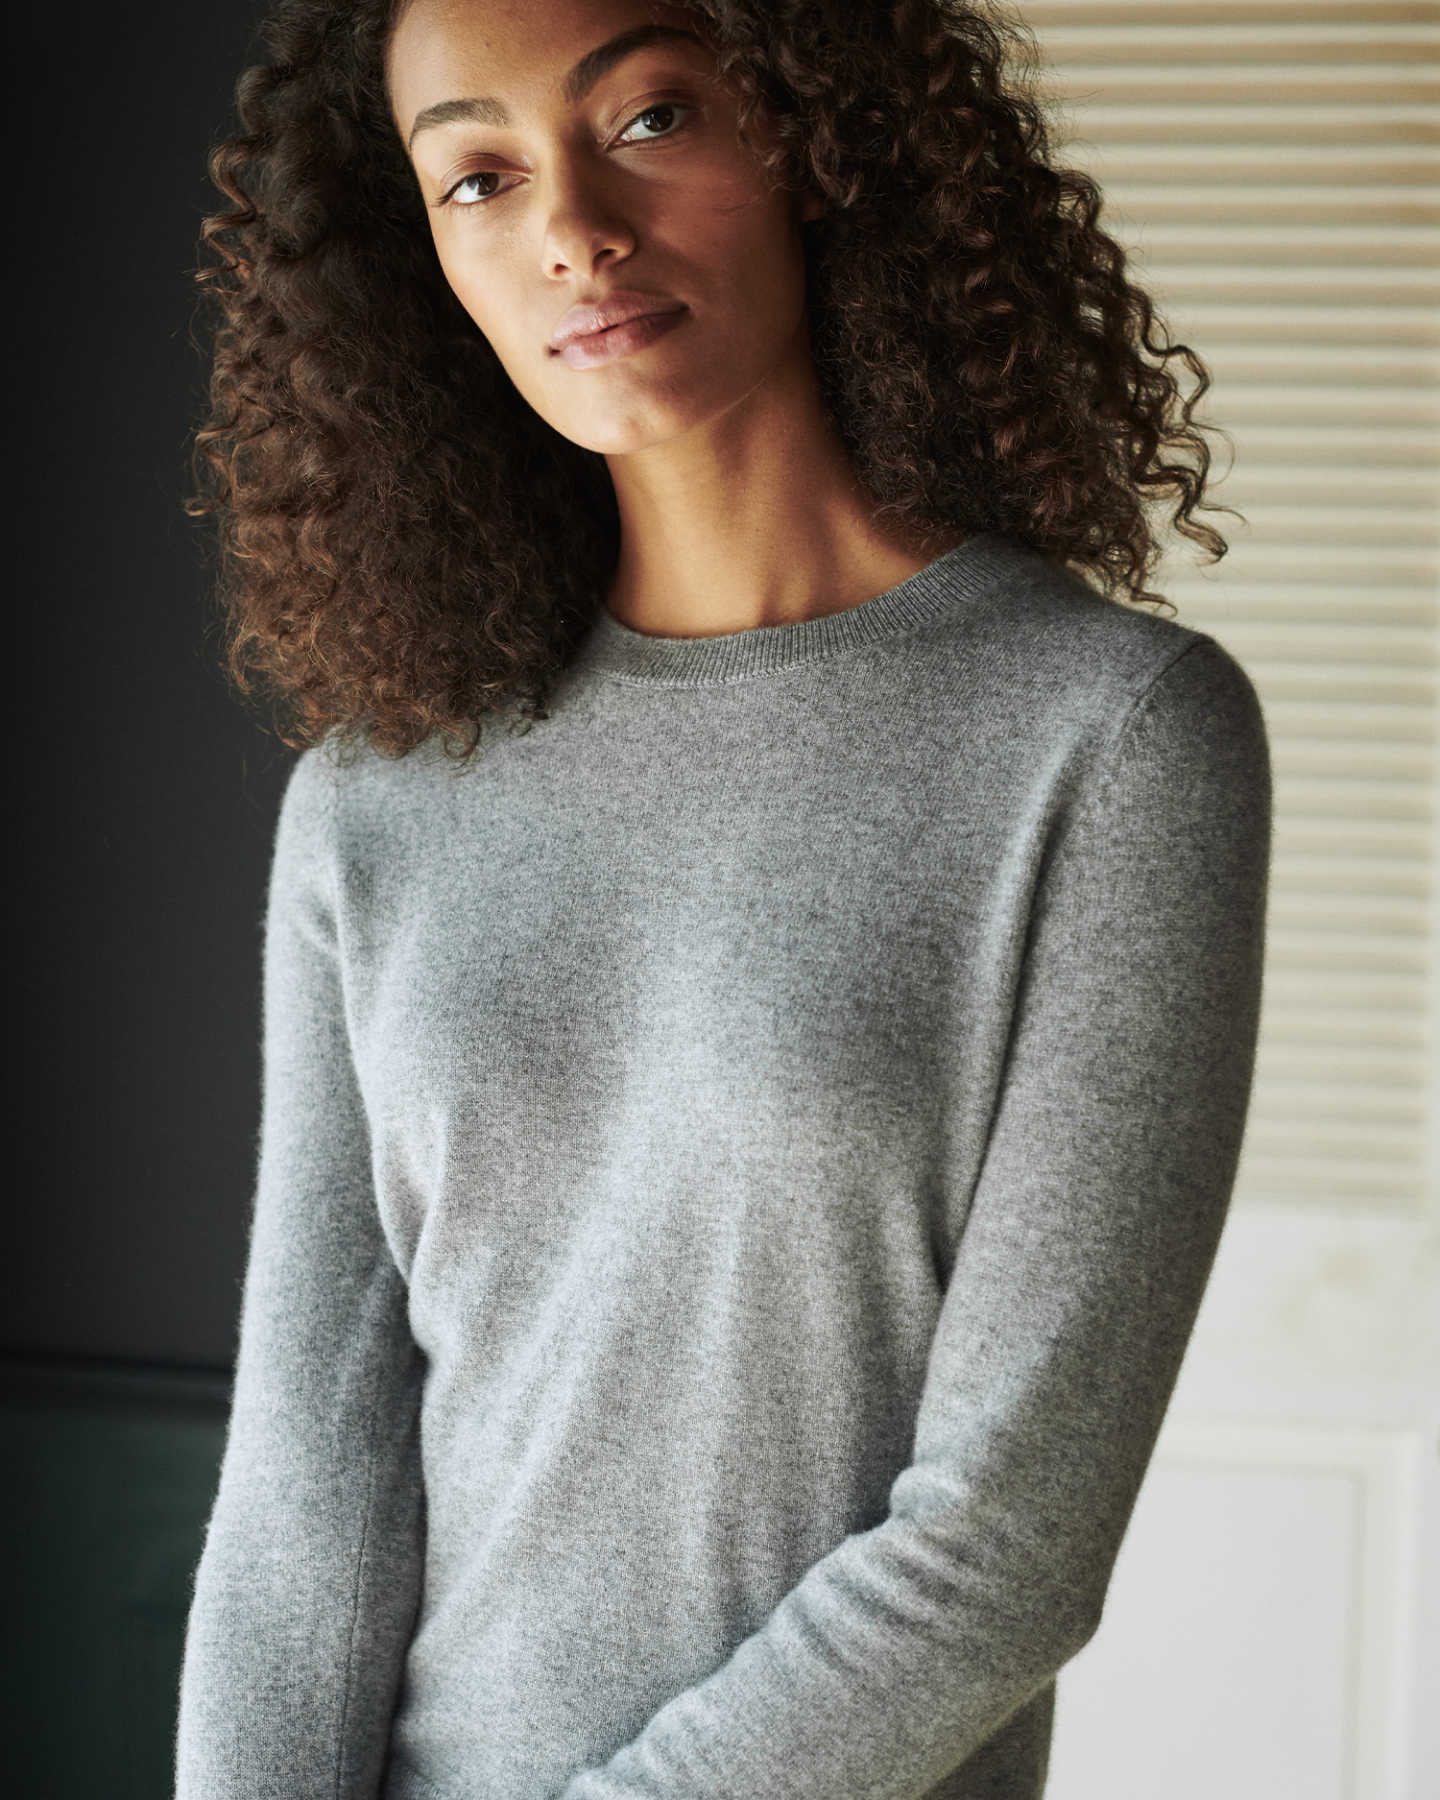 woman wearing grey womens cashmere sweater